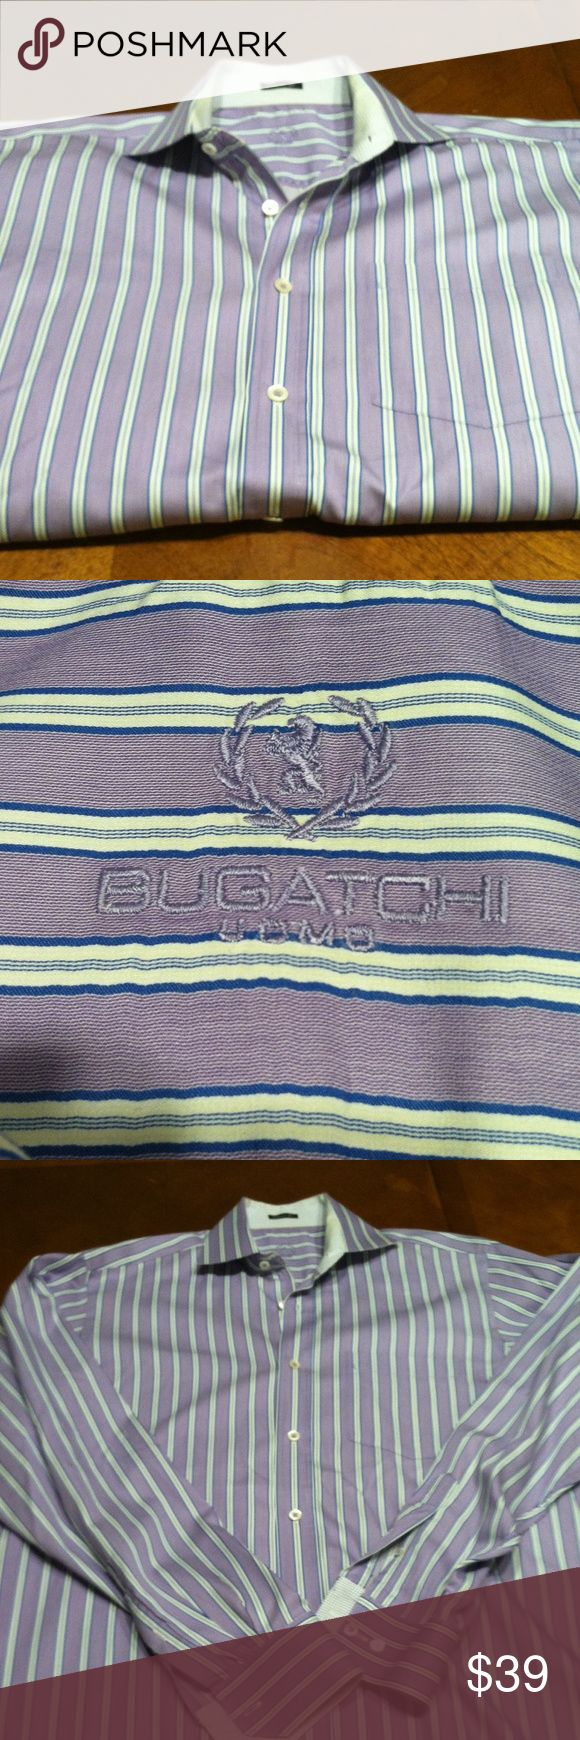 Men's Bugatchi Uomo Classic Fit Shirt-Like New Men's Bugatchi Uomo Classic Fit Shirt-Like New. 100% Cotton -CA 06064.  Great shirt to dress up any man. Bundle Discount or Make an Offer.  Pet free and Smoke free home. Bugatchi Shirts Dress Shirts